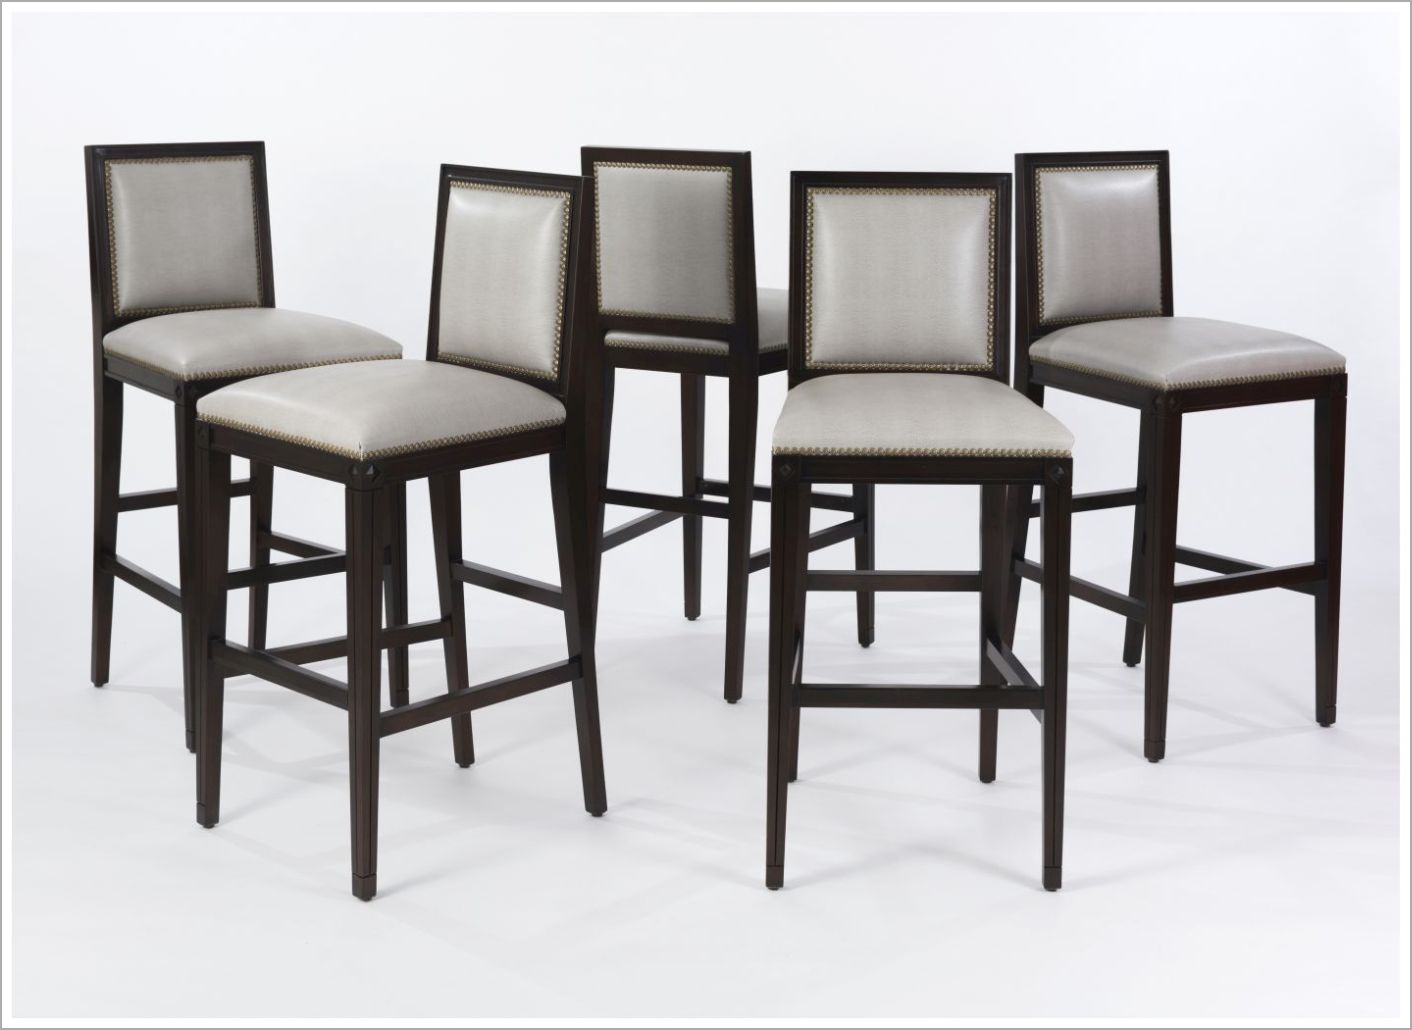 Custom Barstools with Upholstery and Brass Nailhead Trim